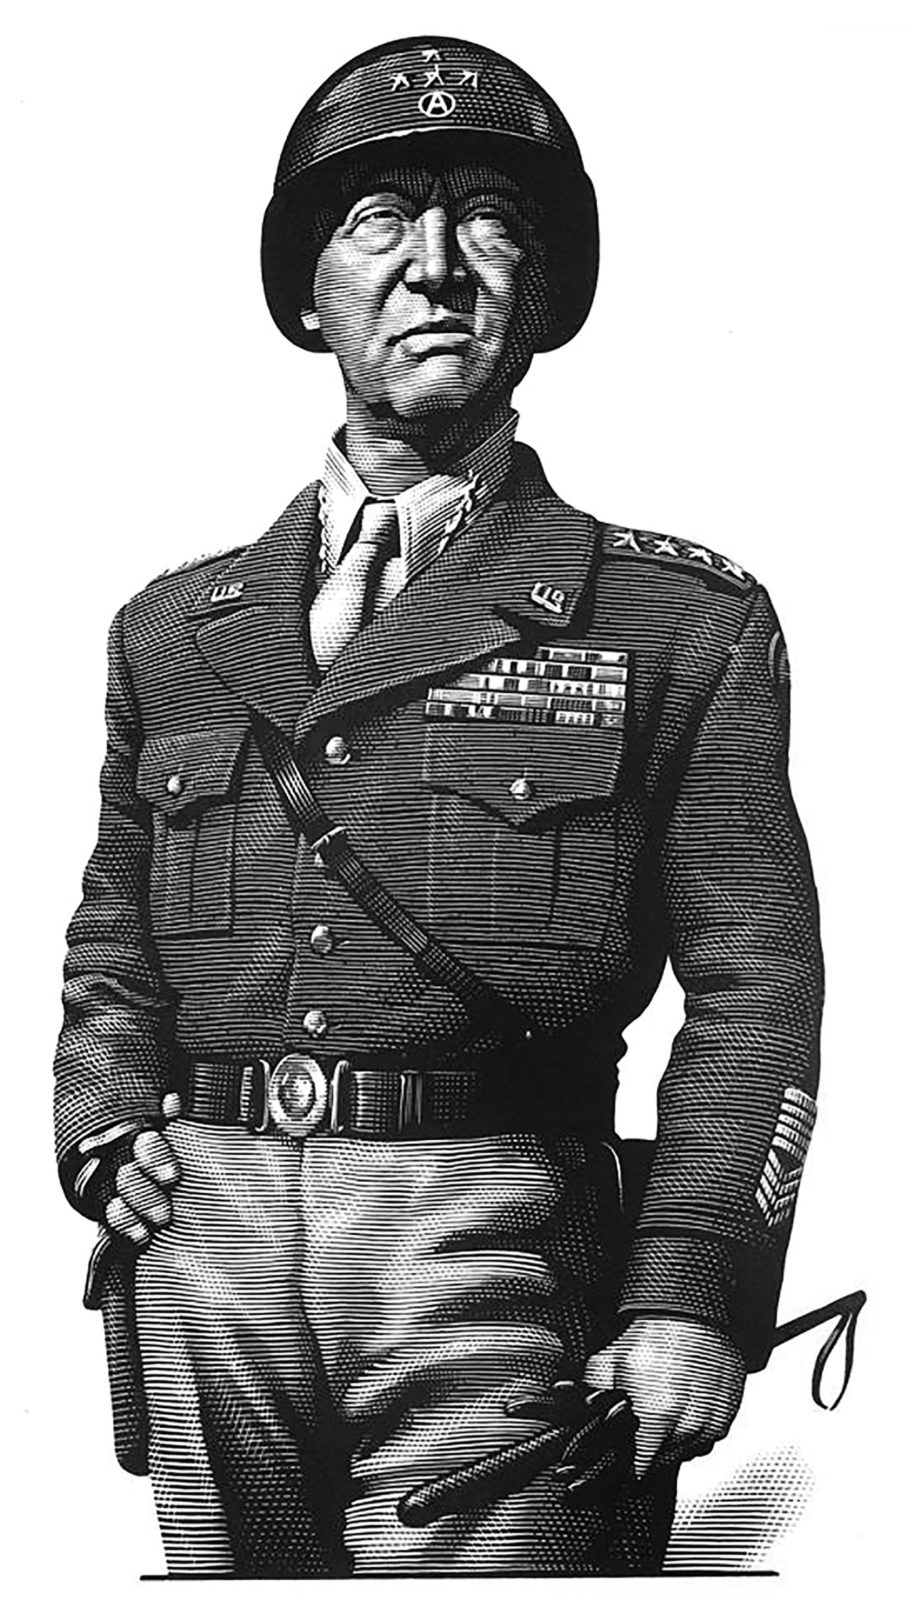 Richard Solomon - Mark-Summers-434-General-George-S-Patton